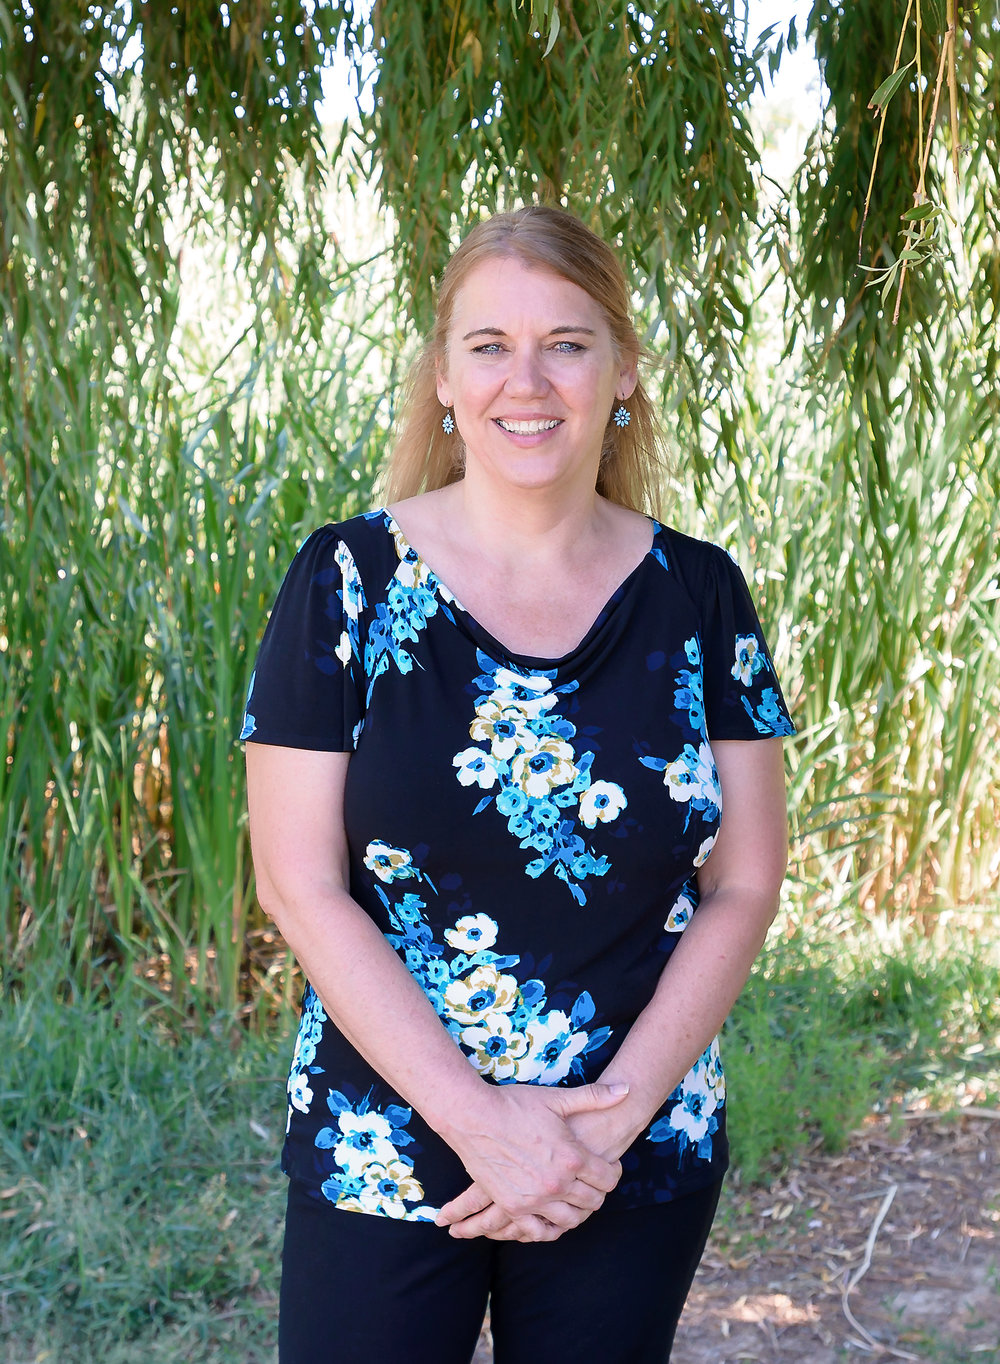 Danee Haro, Executive Assistant - I only came for the donuts! Well, that was my plan when attending a Bible study, but God had His own idea.  He worked His way into my heart and since then I have worked in ministries reaching out to the lost.  What better job in the world?A few interesting facts about me:· Logistics and lists are my friends· I can't imagine life without coffee· Mom to 2 grown boys and 2 wiener dogs· I love crime books, shows, podcasts· I usually have 3-5 projects going-quilting, crocheting, painting my house, etc.  The list goes on and on. Did you notice the lists?Danee@TILM.org | 208-481-4718